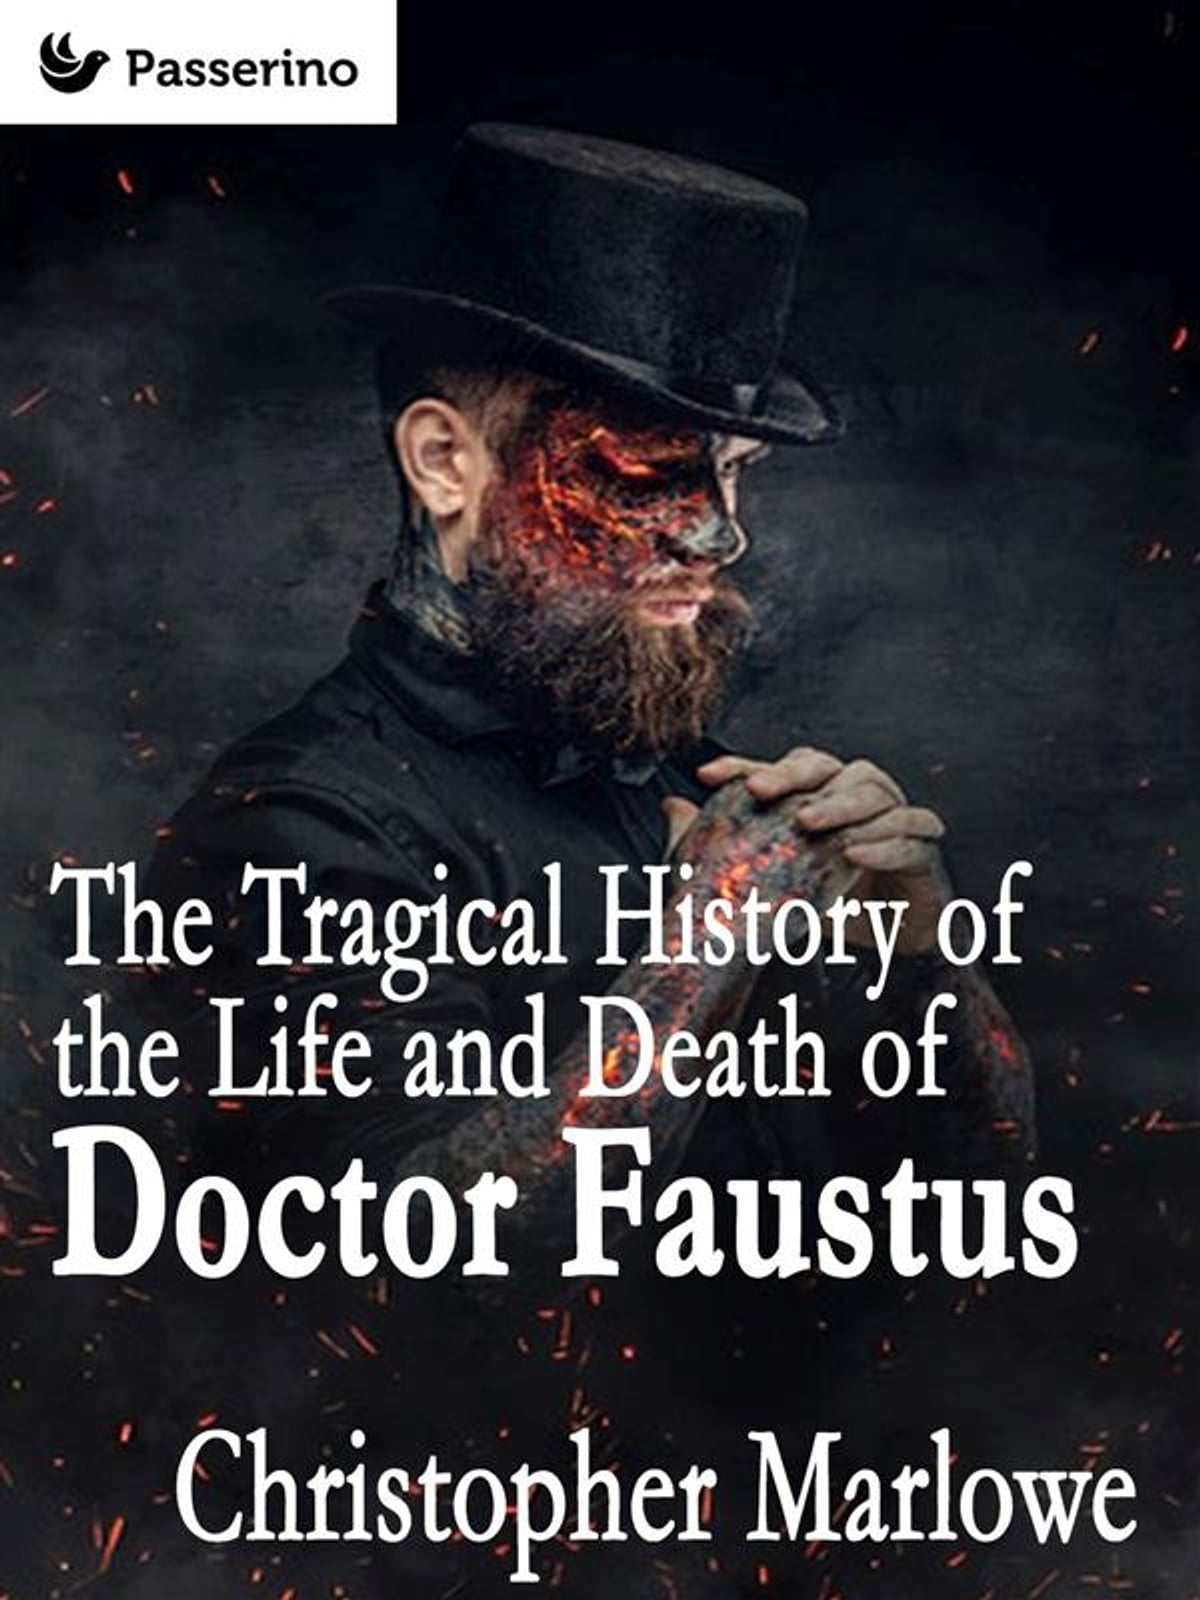 an analysis of dr faustus by christopher marlowe Marlowe's doctor faustus is based on the soliloquy of a human soul, having a debate between desires and conscience read literature in its true spirit.